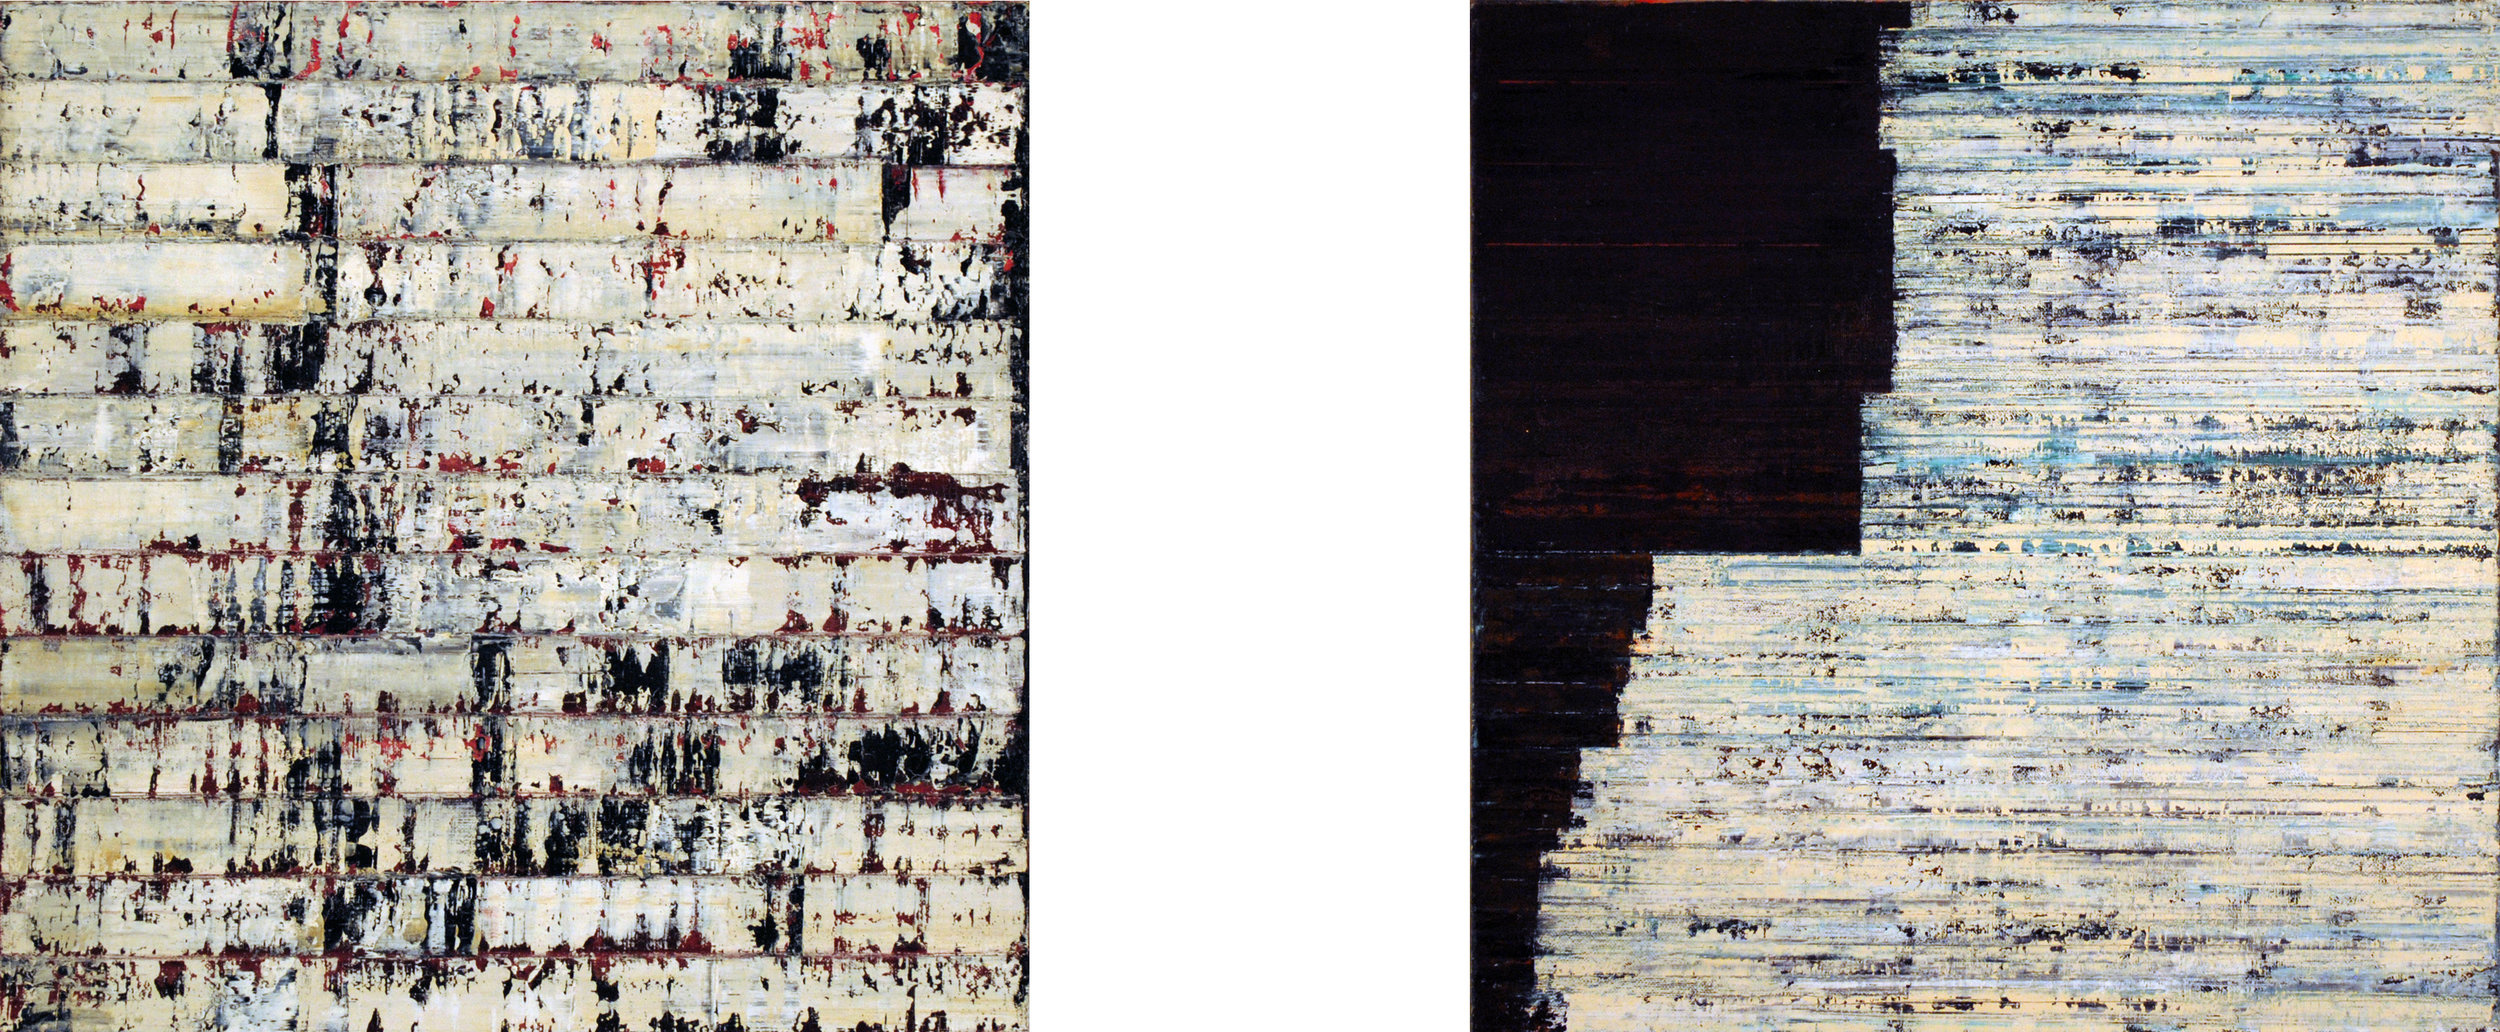 ISIS 10 & 11, 2008, Oil and acrylic on canvases, 16 x 38.75 inches.